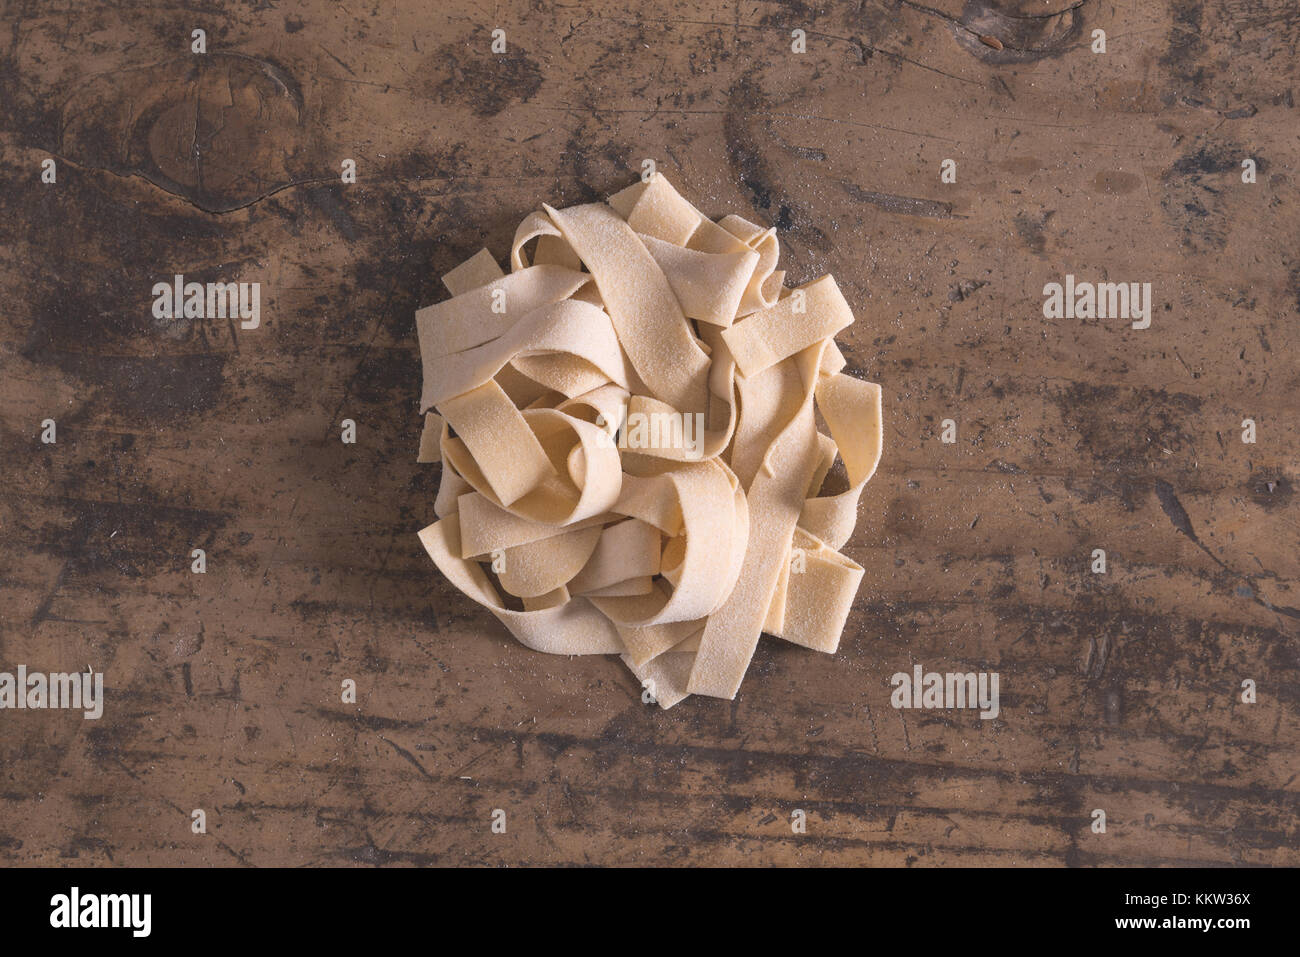 Cavatelli stock photos cavatelli stock images alamy hand made pappardelle typical fresh pasta from emilia romagna stock image jeuxipadfo Image collections